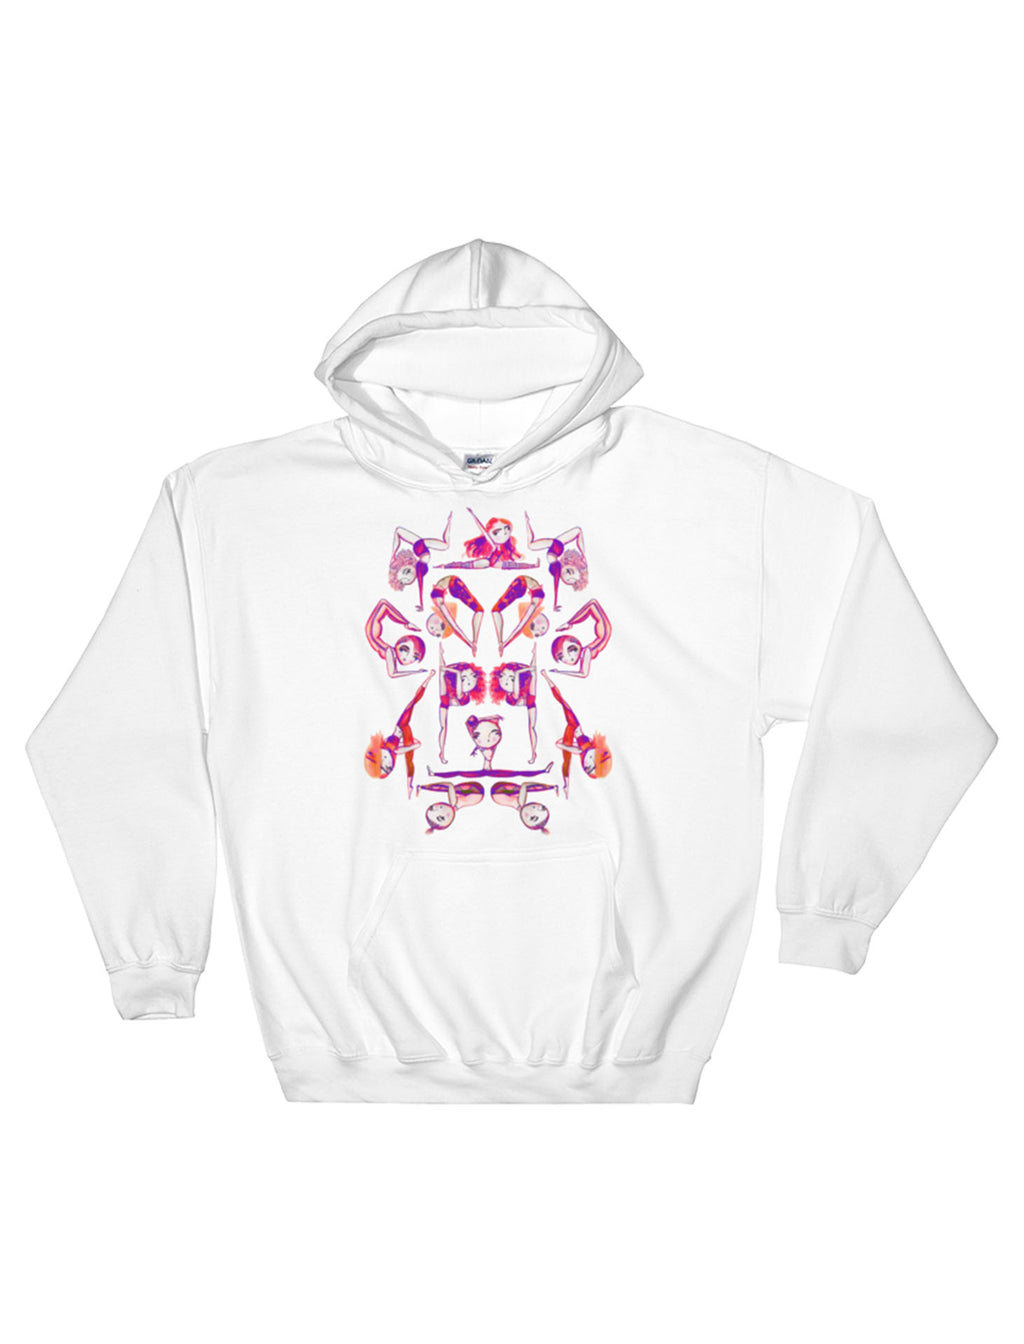 Let's Get Flexy Fleece Pullover Hoodie